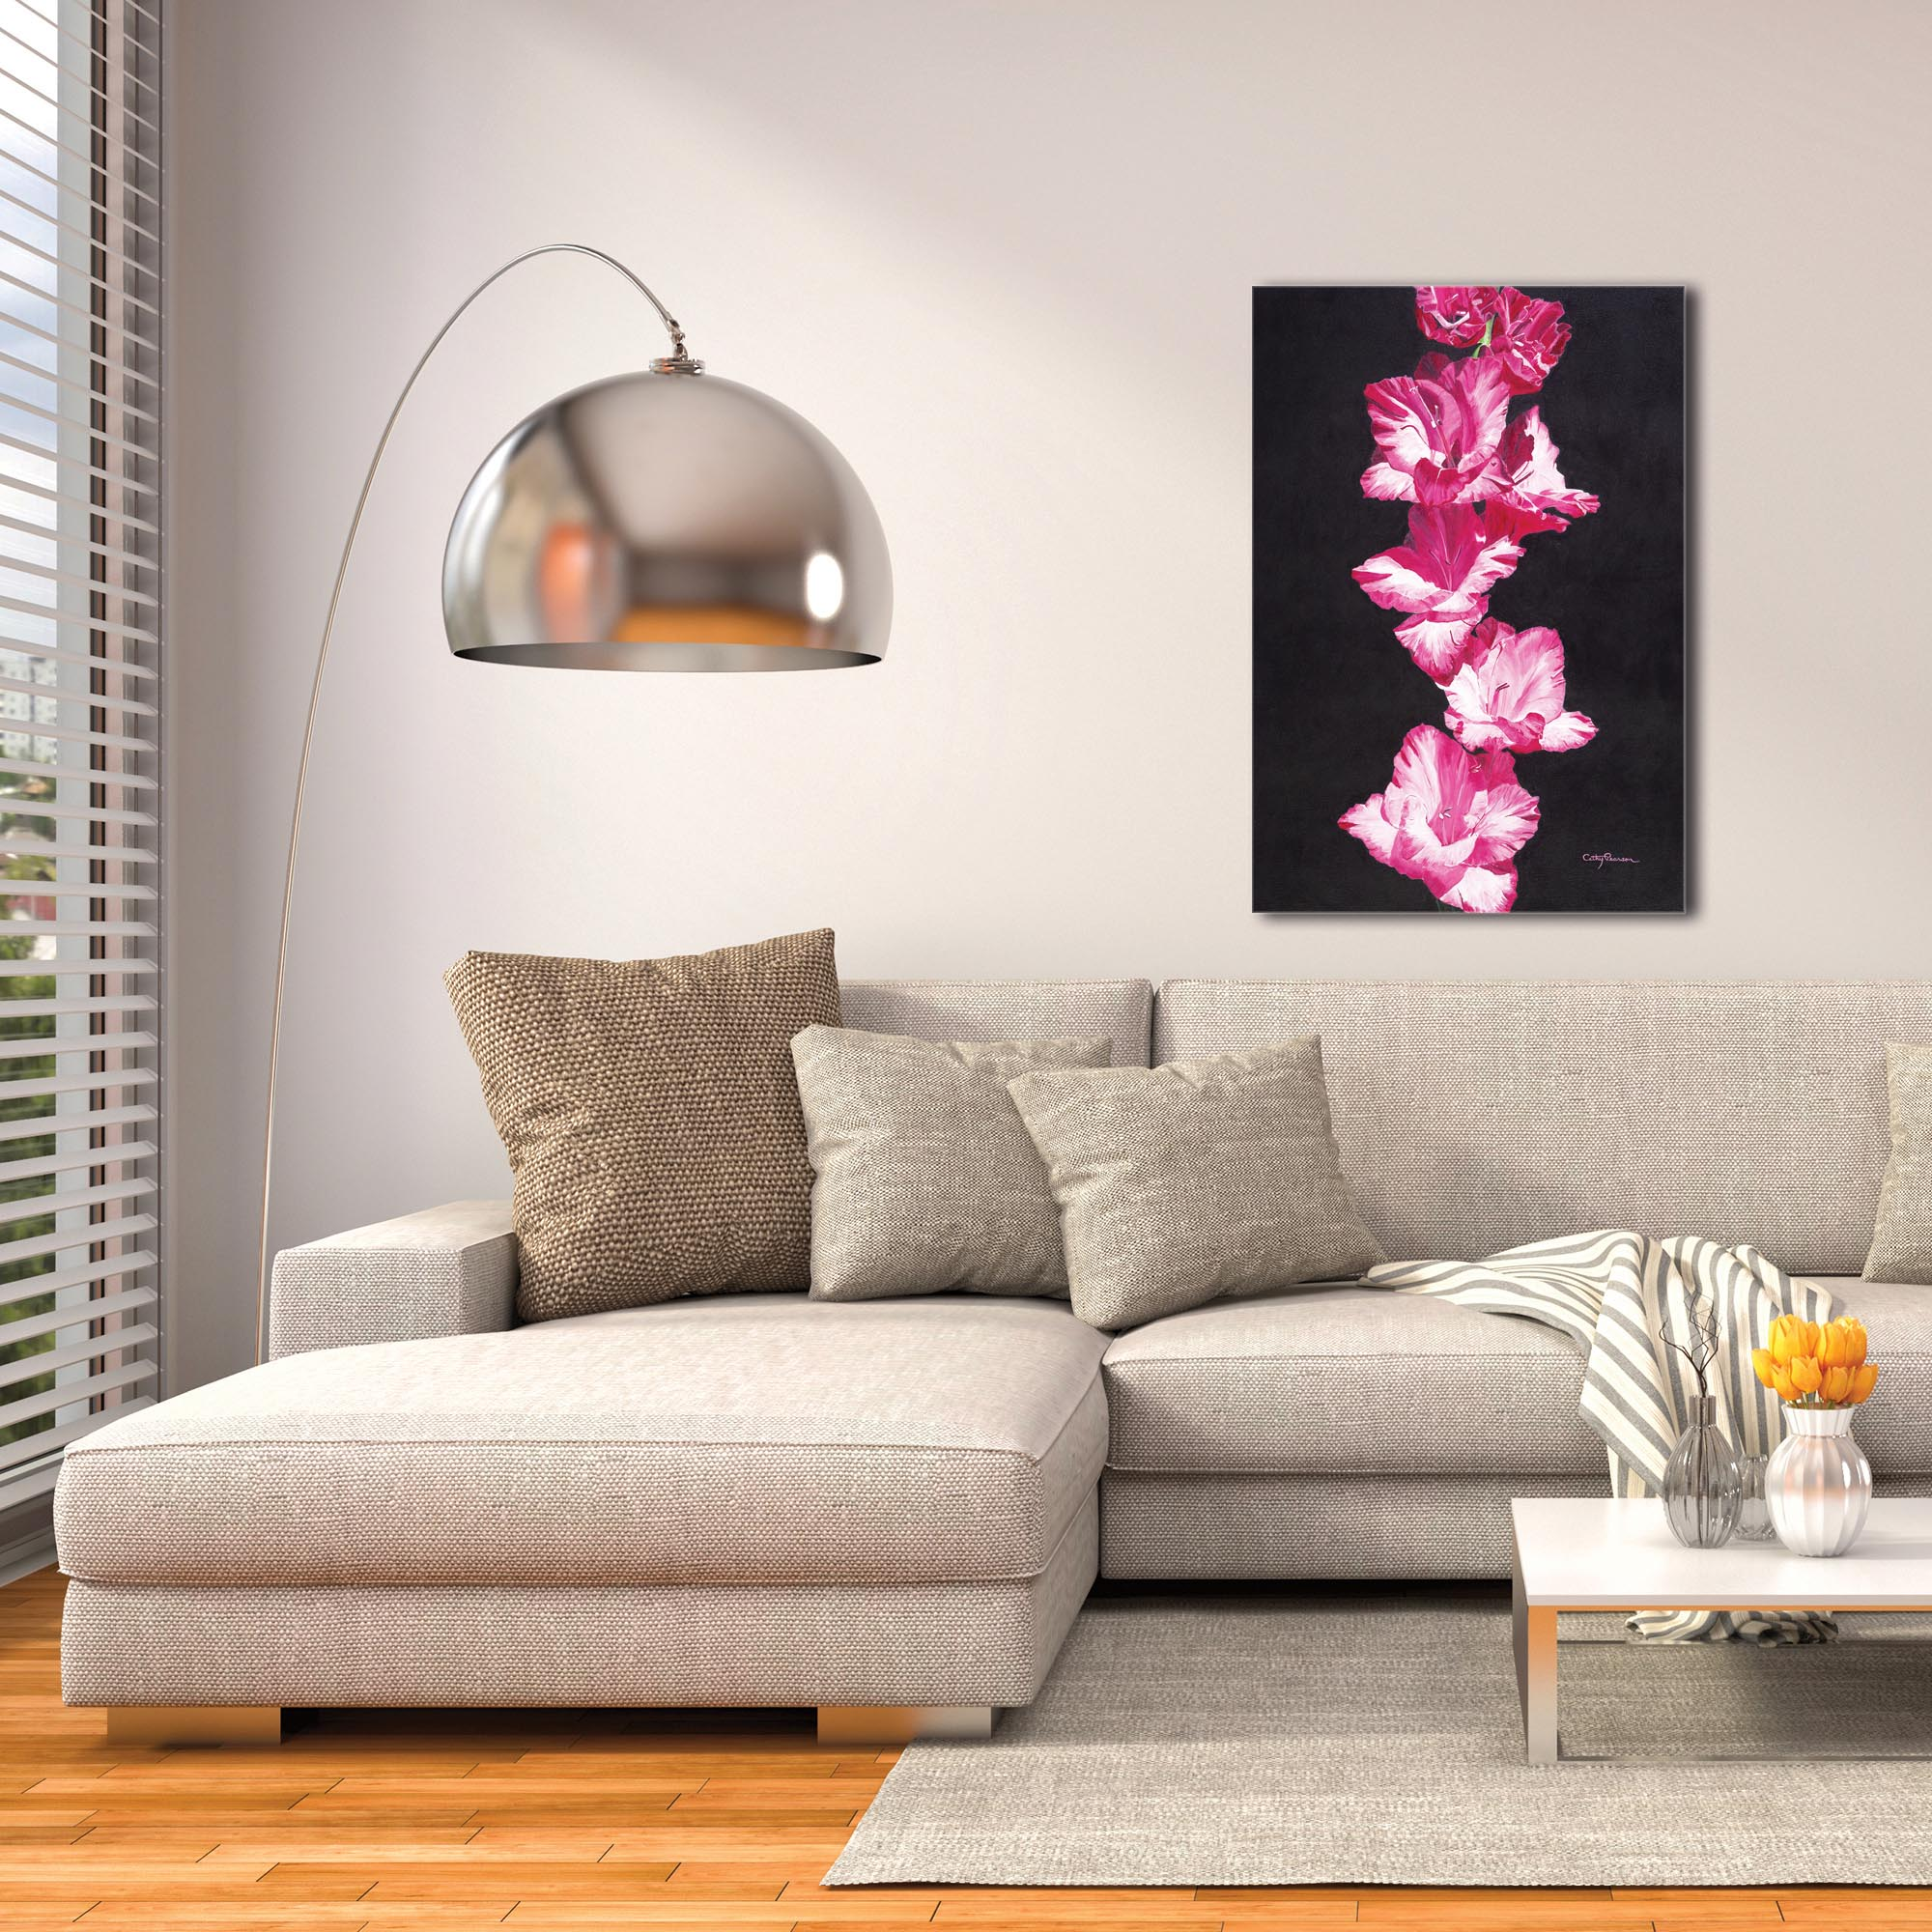 Traditional Wall Art 'Bright Pink Glads' - Floral Decor on Metal or Plexiglass - Image 3